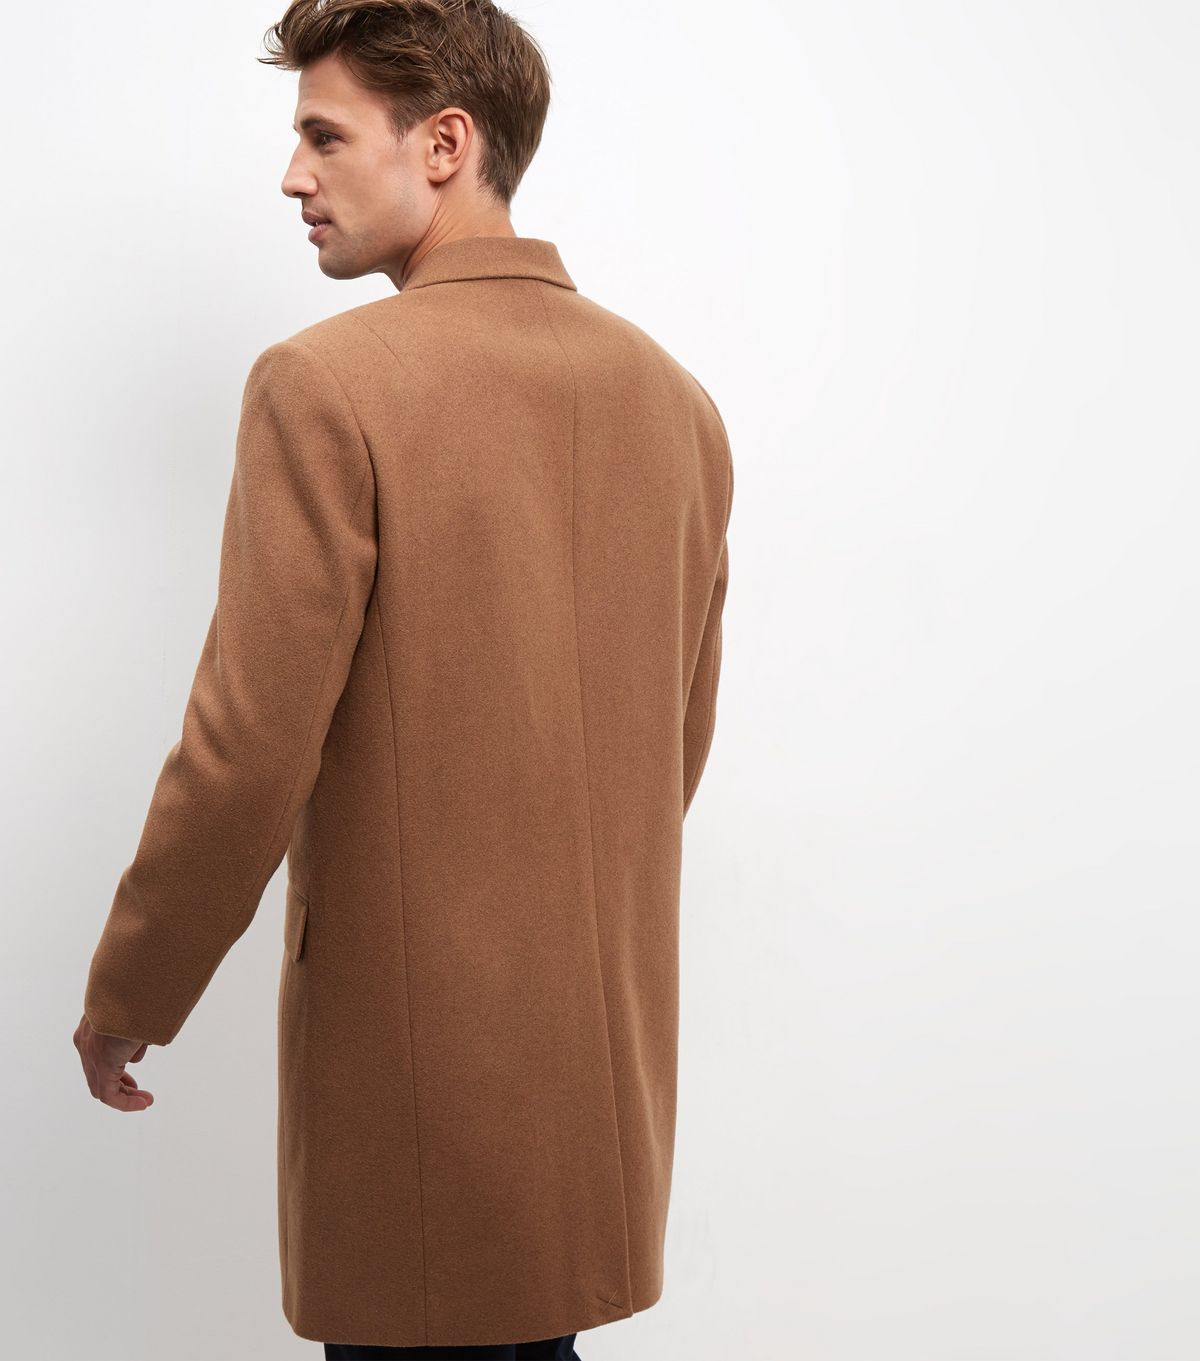 http://media.newlookassets.com/i/newlook/382014017D2/mens/jackets-and-coats/coats/camel-wool-mix-longline-overcoat/?$new_pdp_szoom_image_1200$